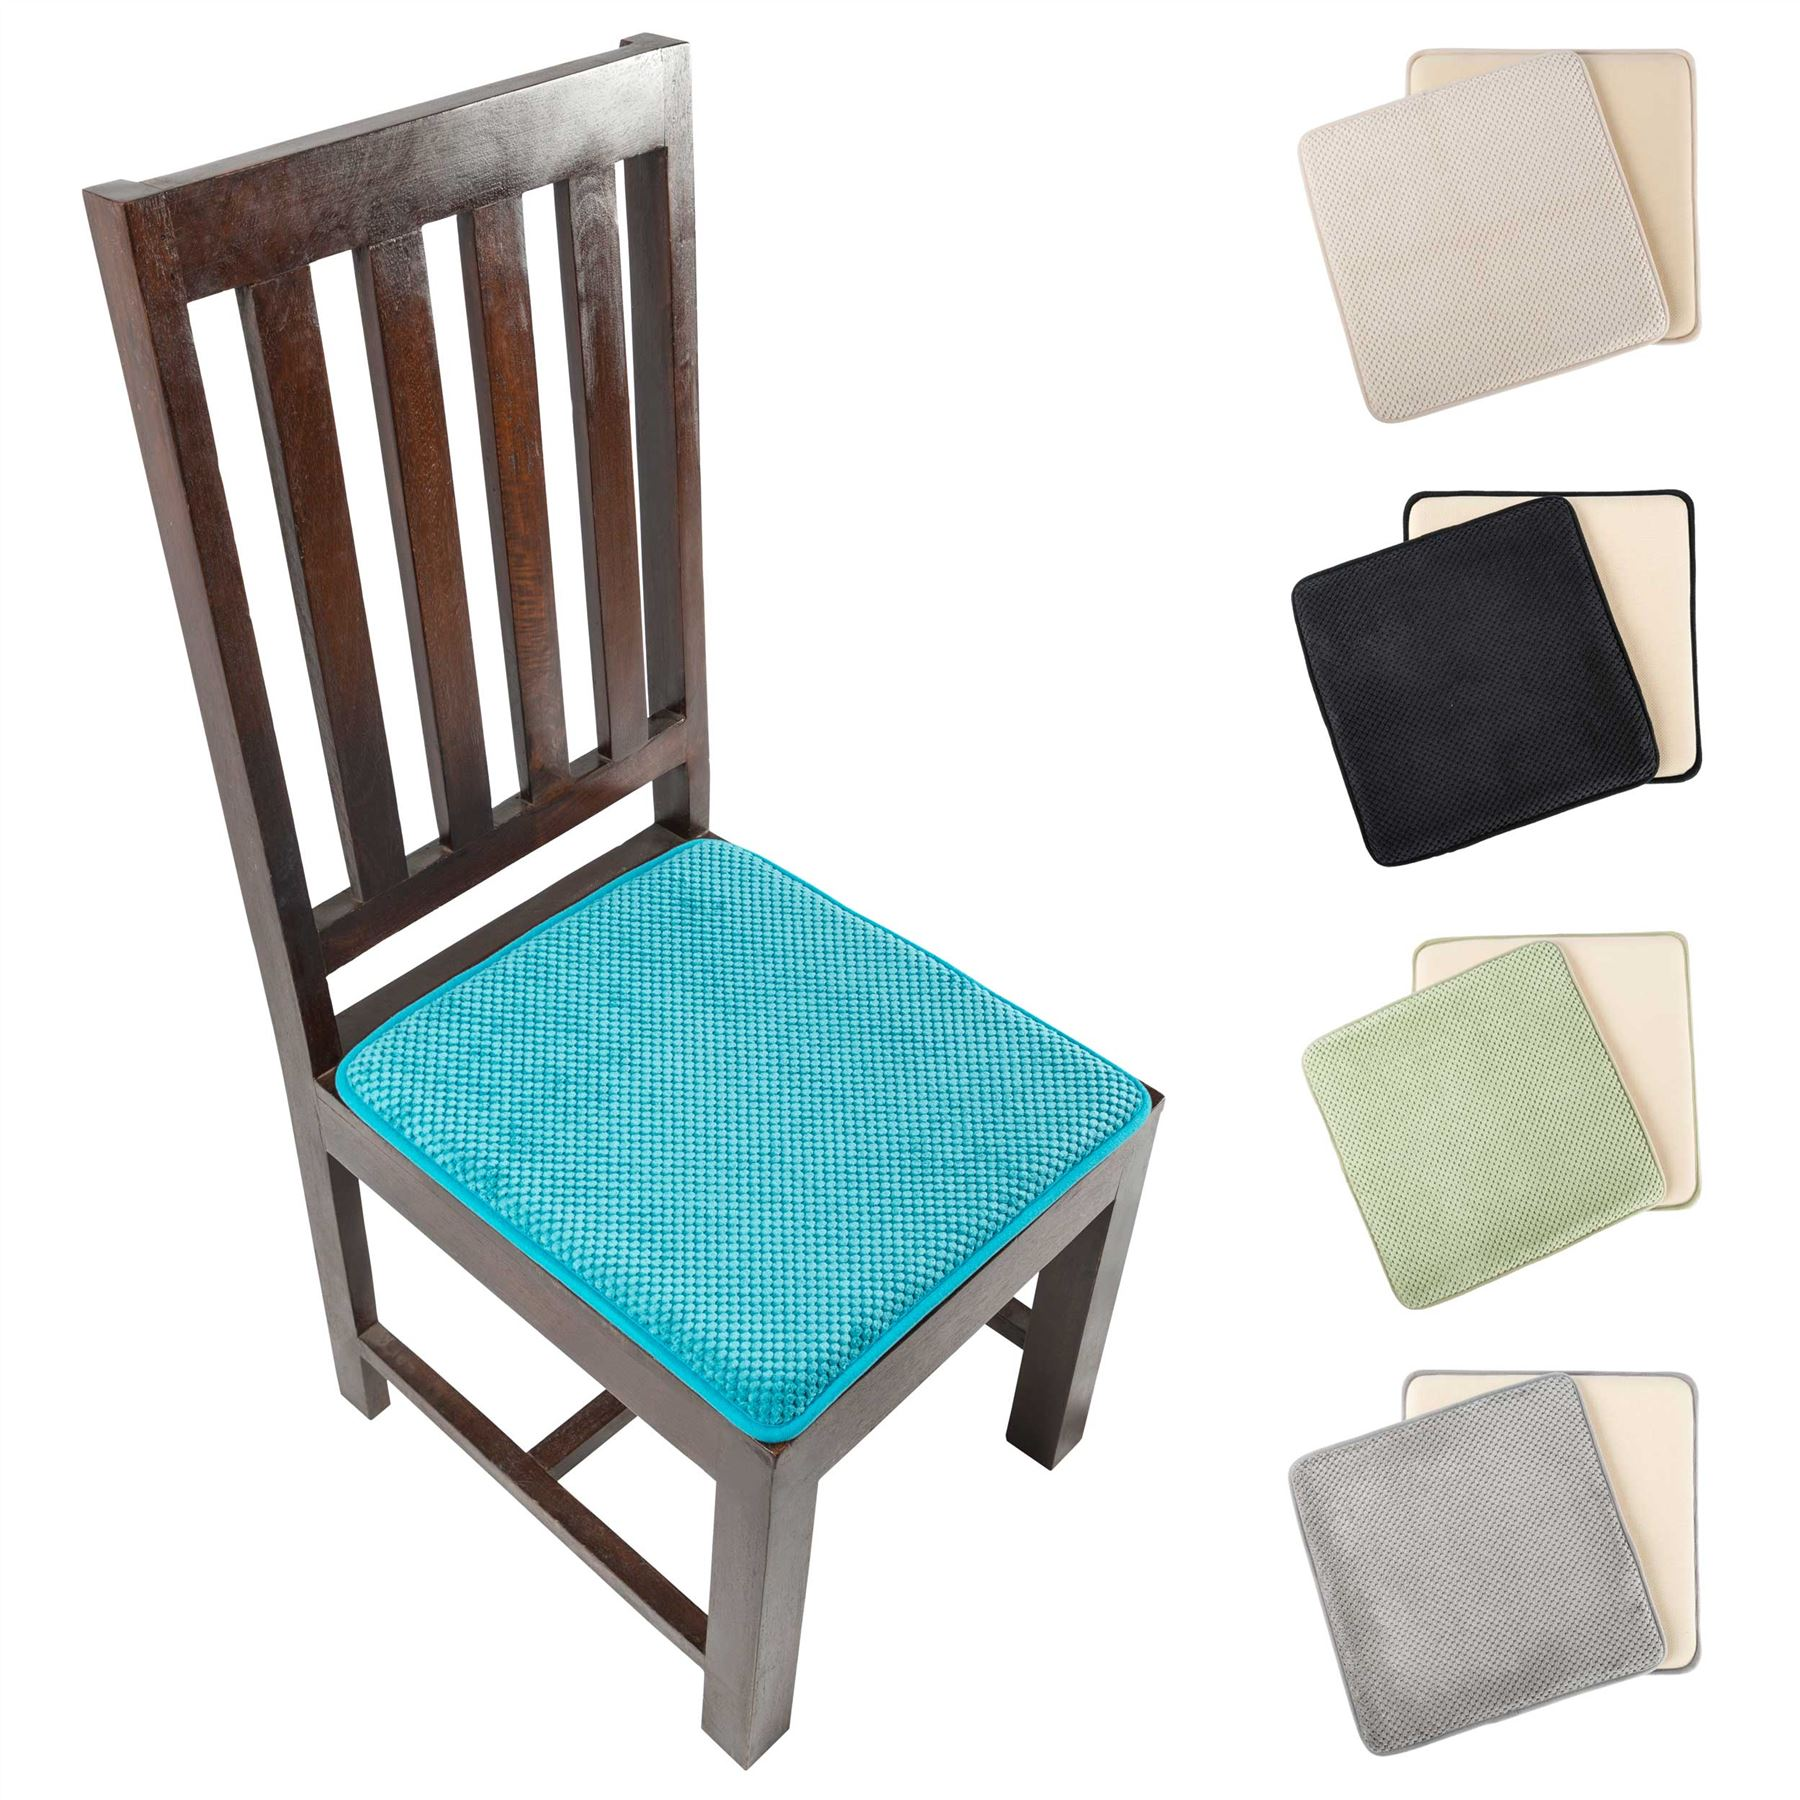 Details about memory foam seat pads square dining chair booster riser floor cushion set of 2